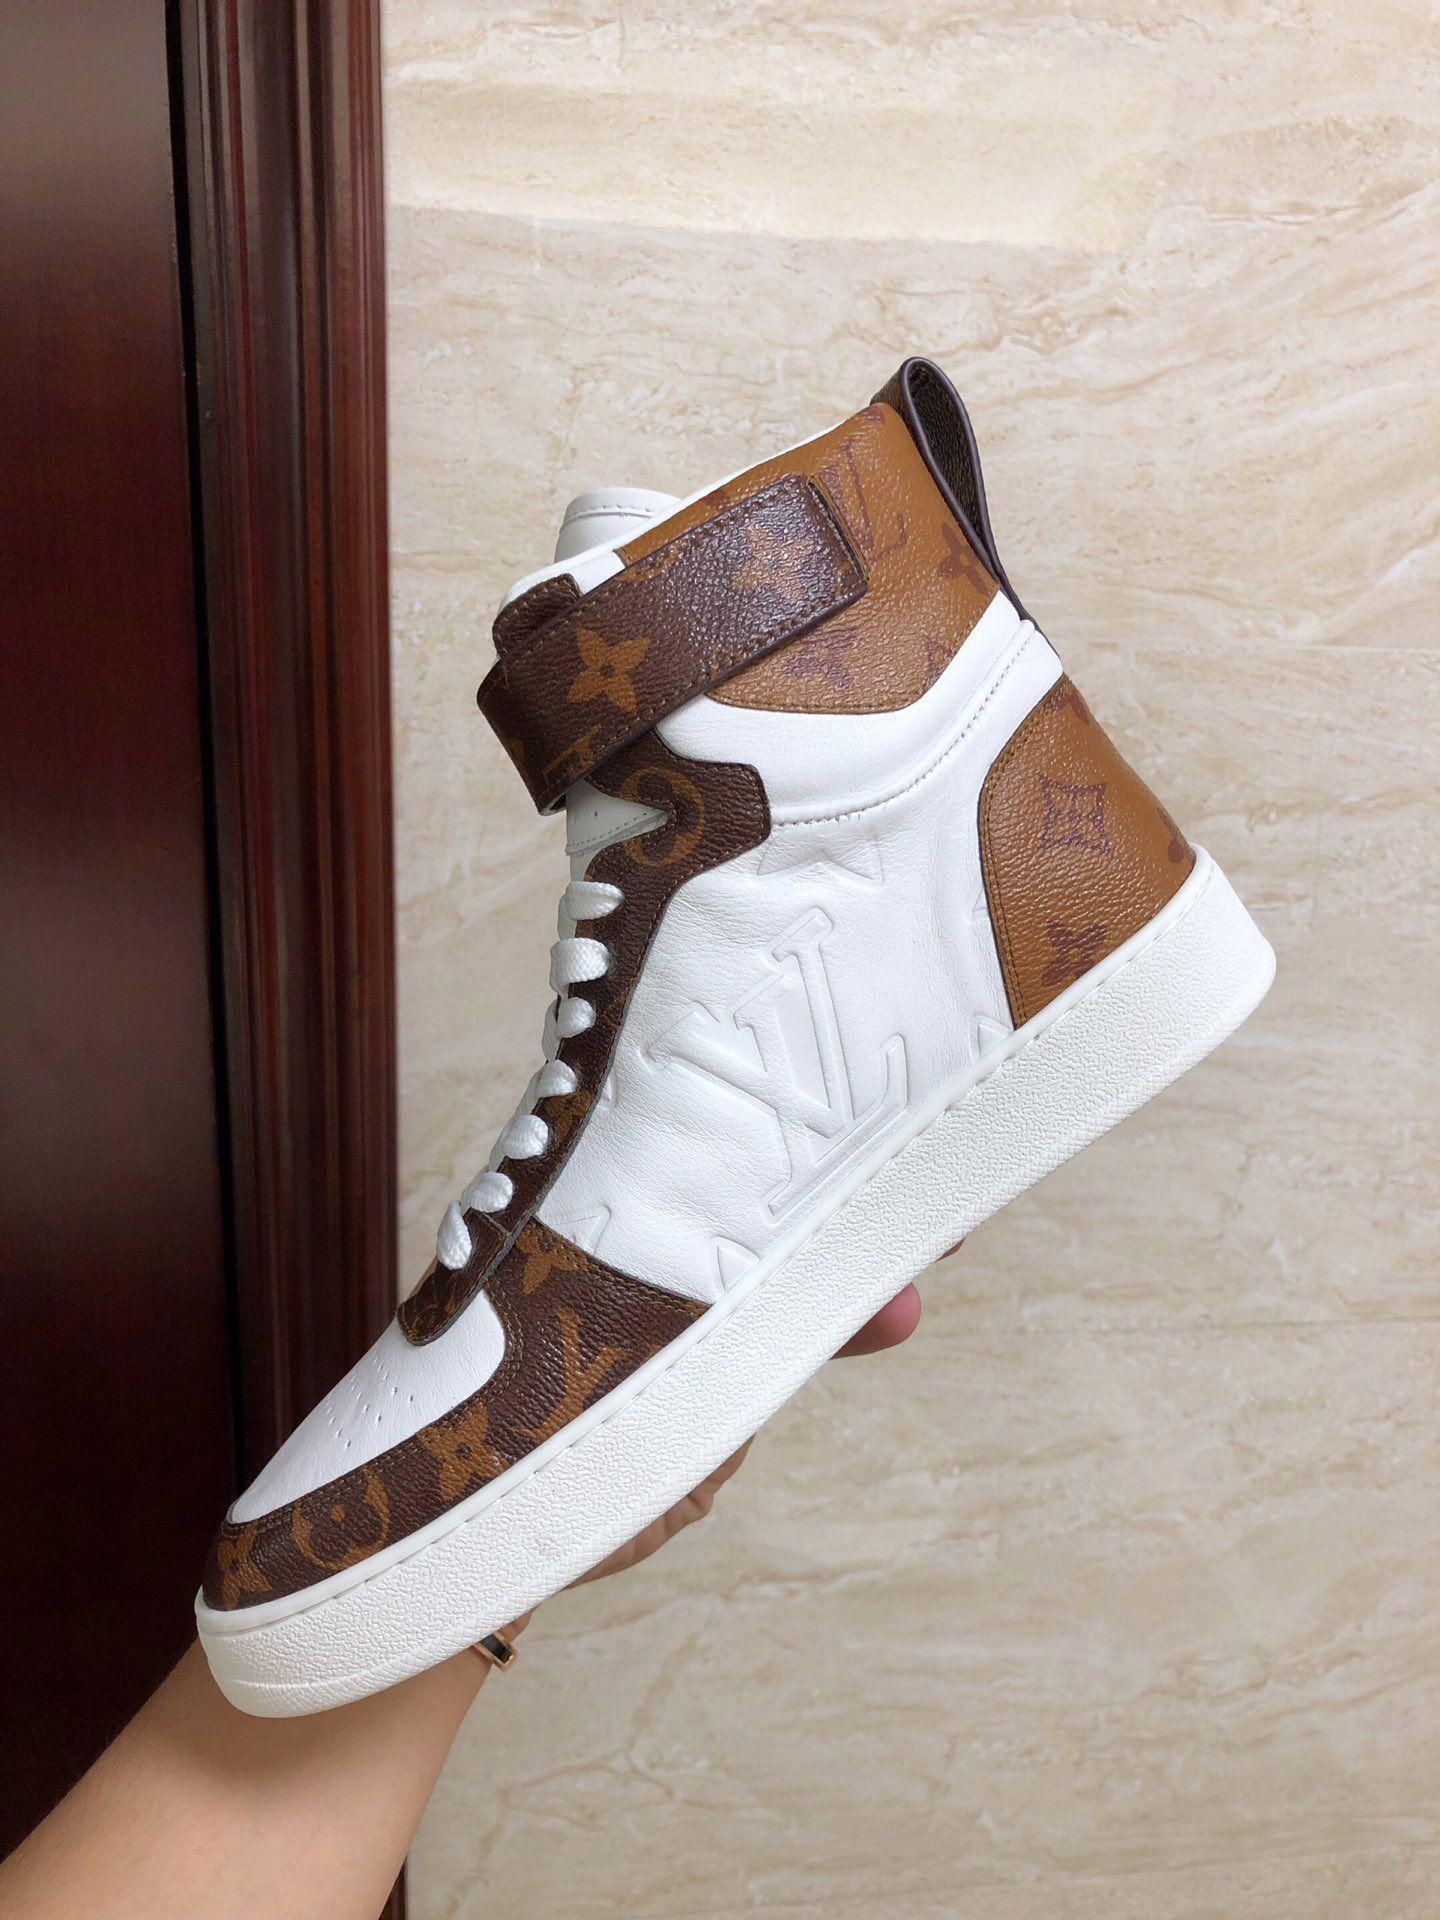 boombox sneaker boot    women sneaker 1A5MWJ Embossed lamb leather  White  7